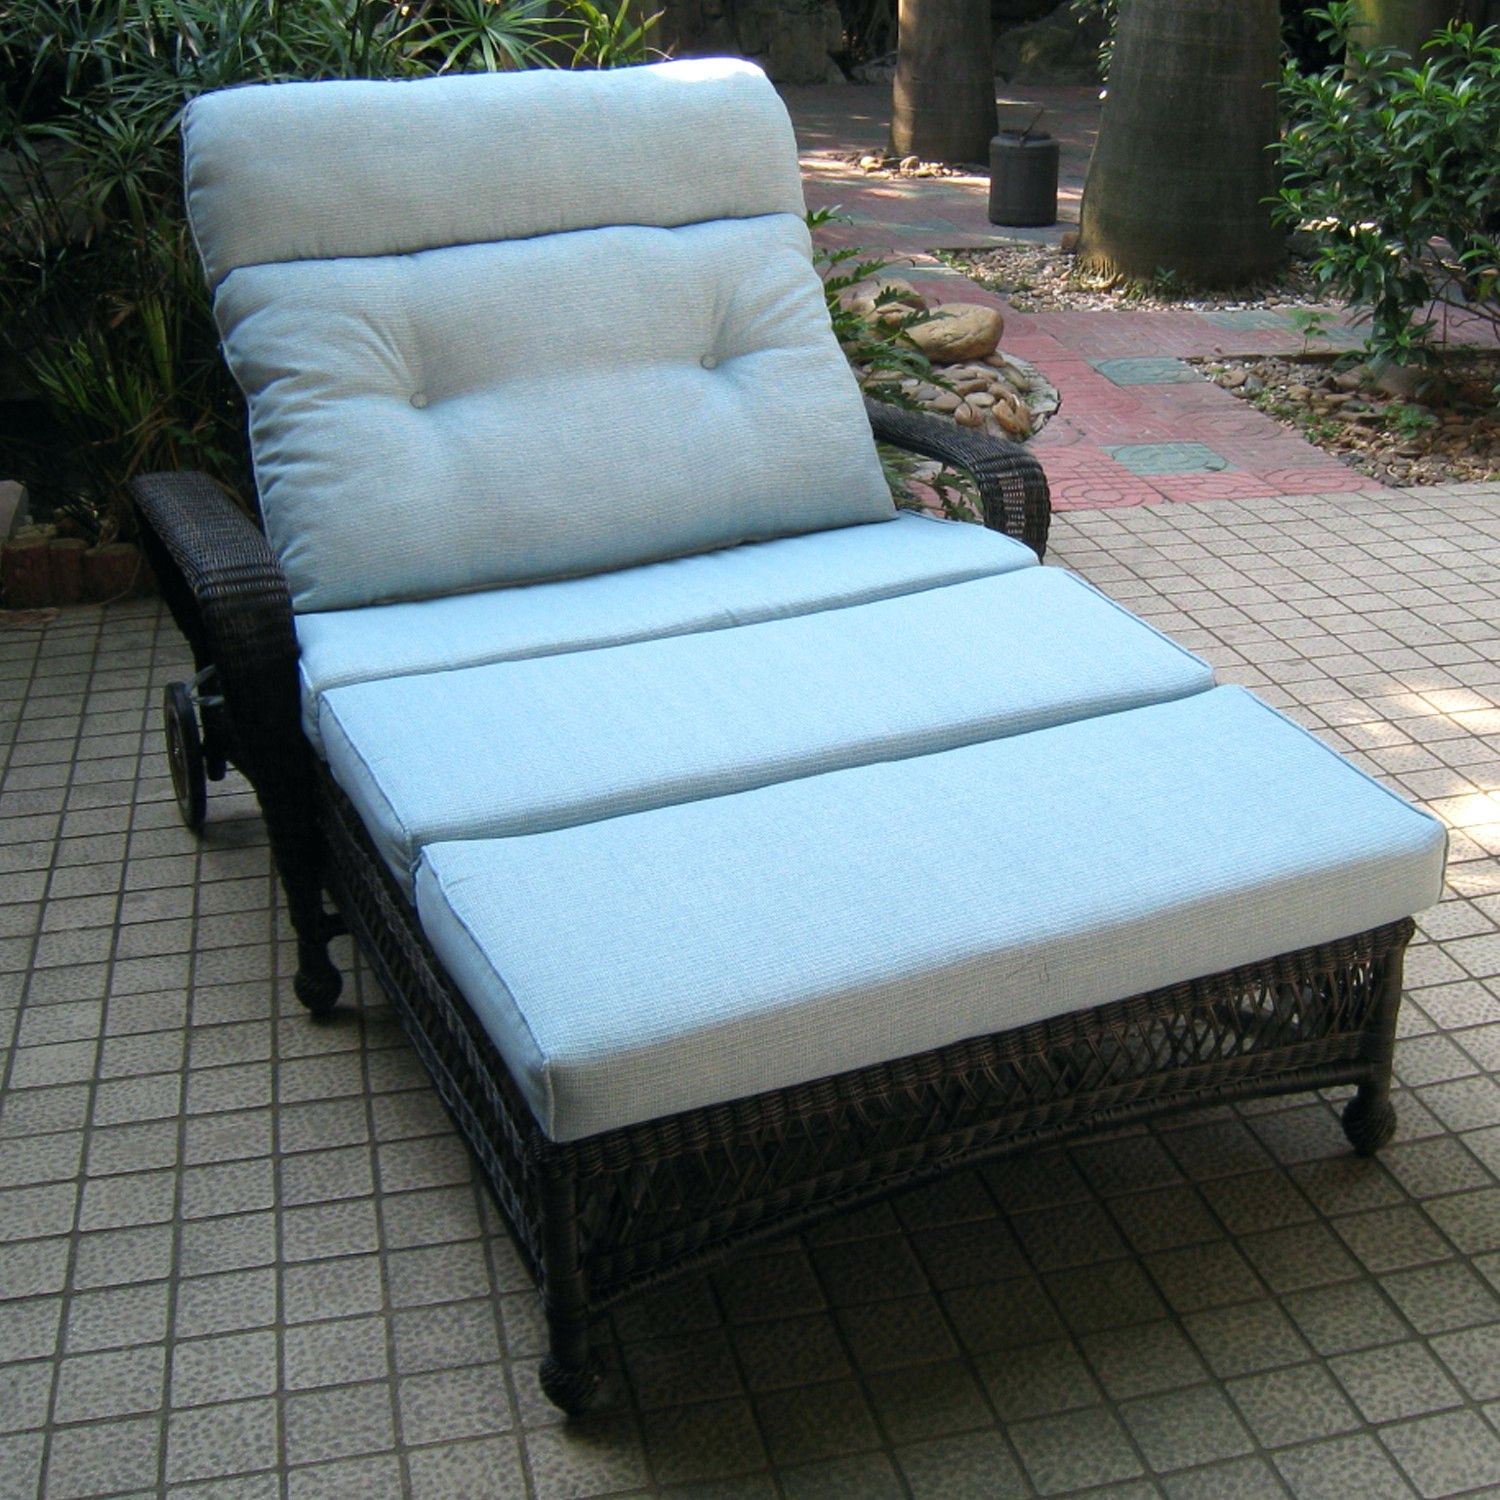 Outdoor Hanging Double Lounger Chair